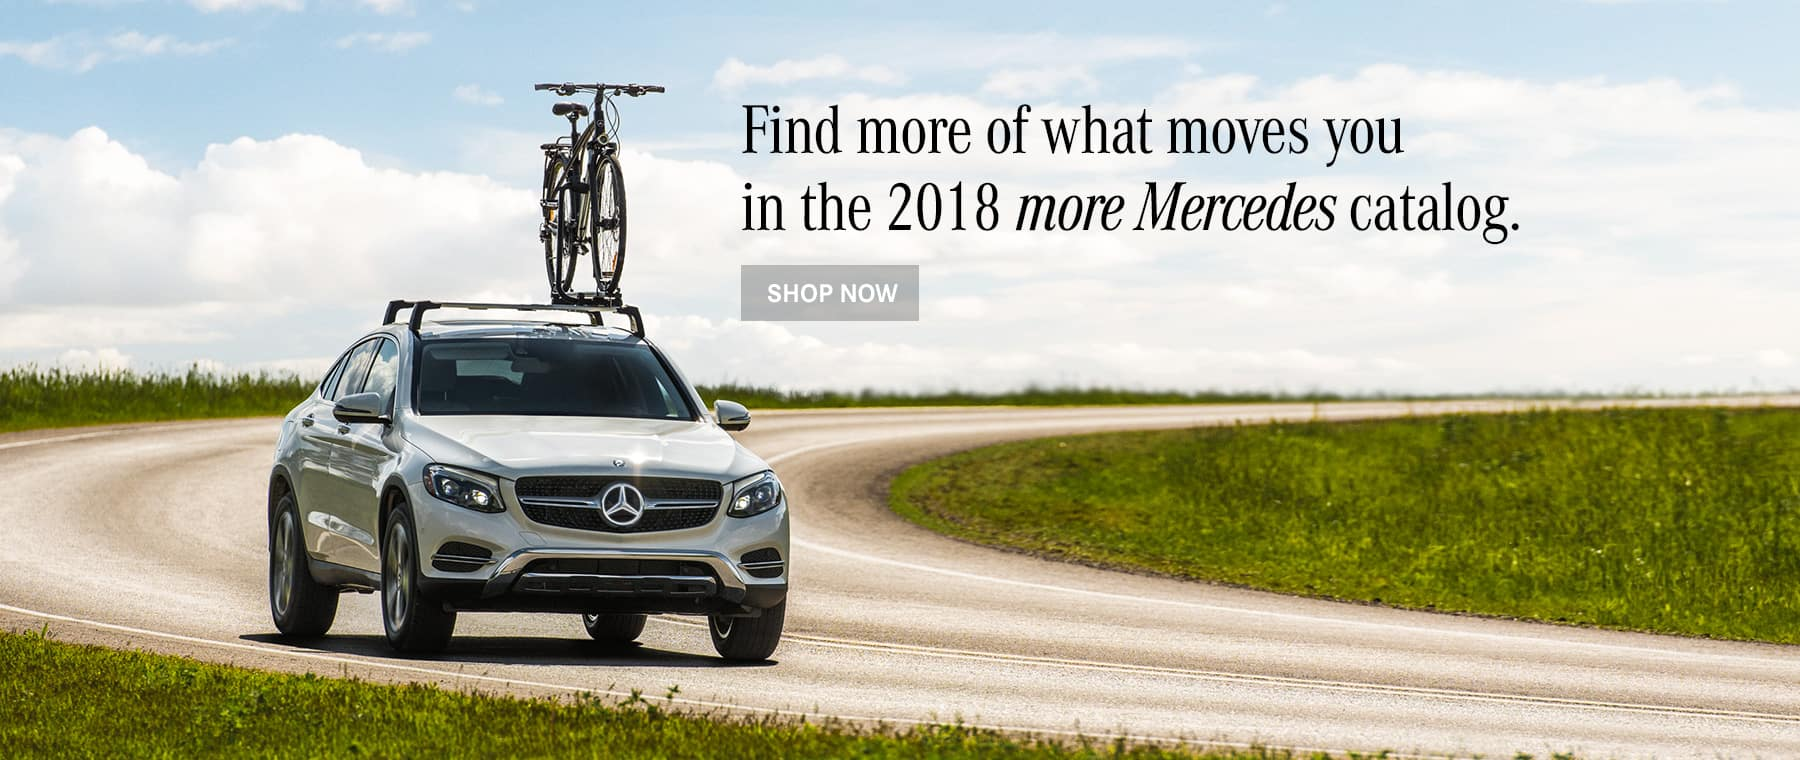 mercedes-benz of new orleans | new & used dealership | serving kenner